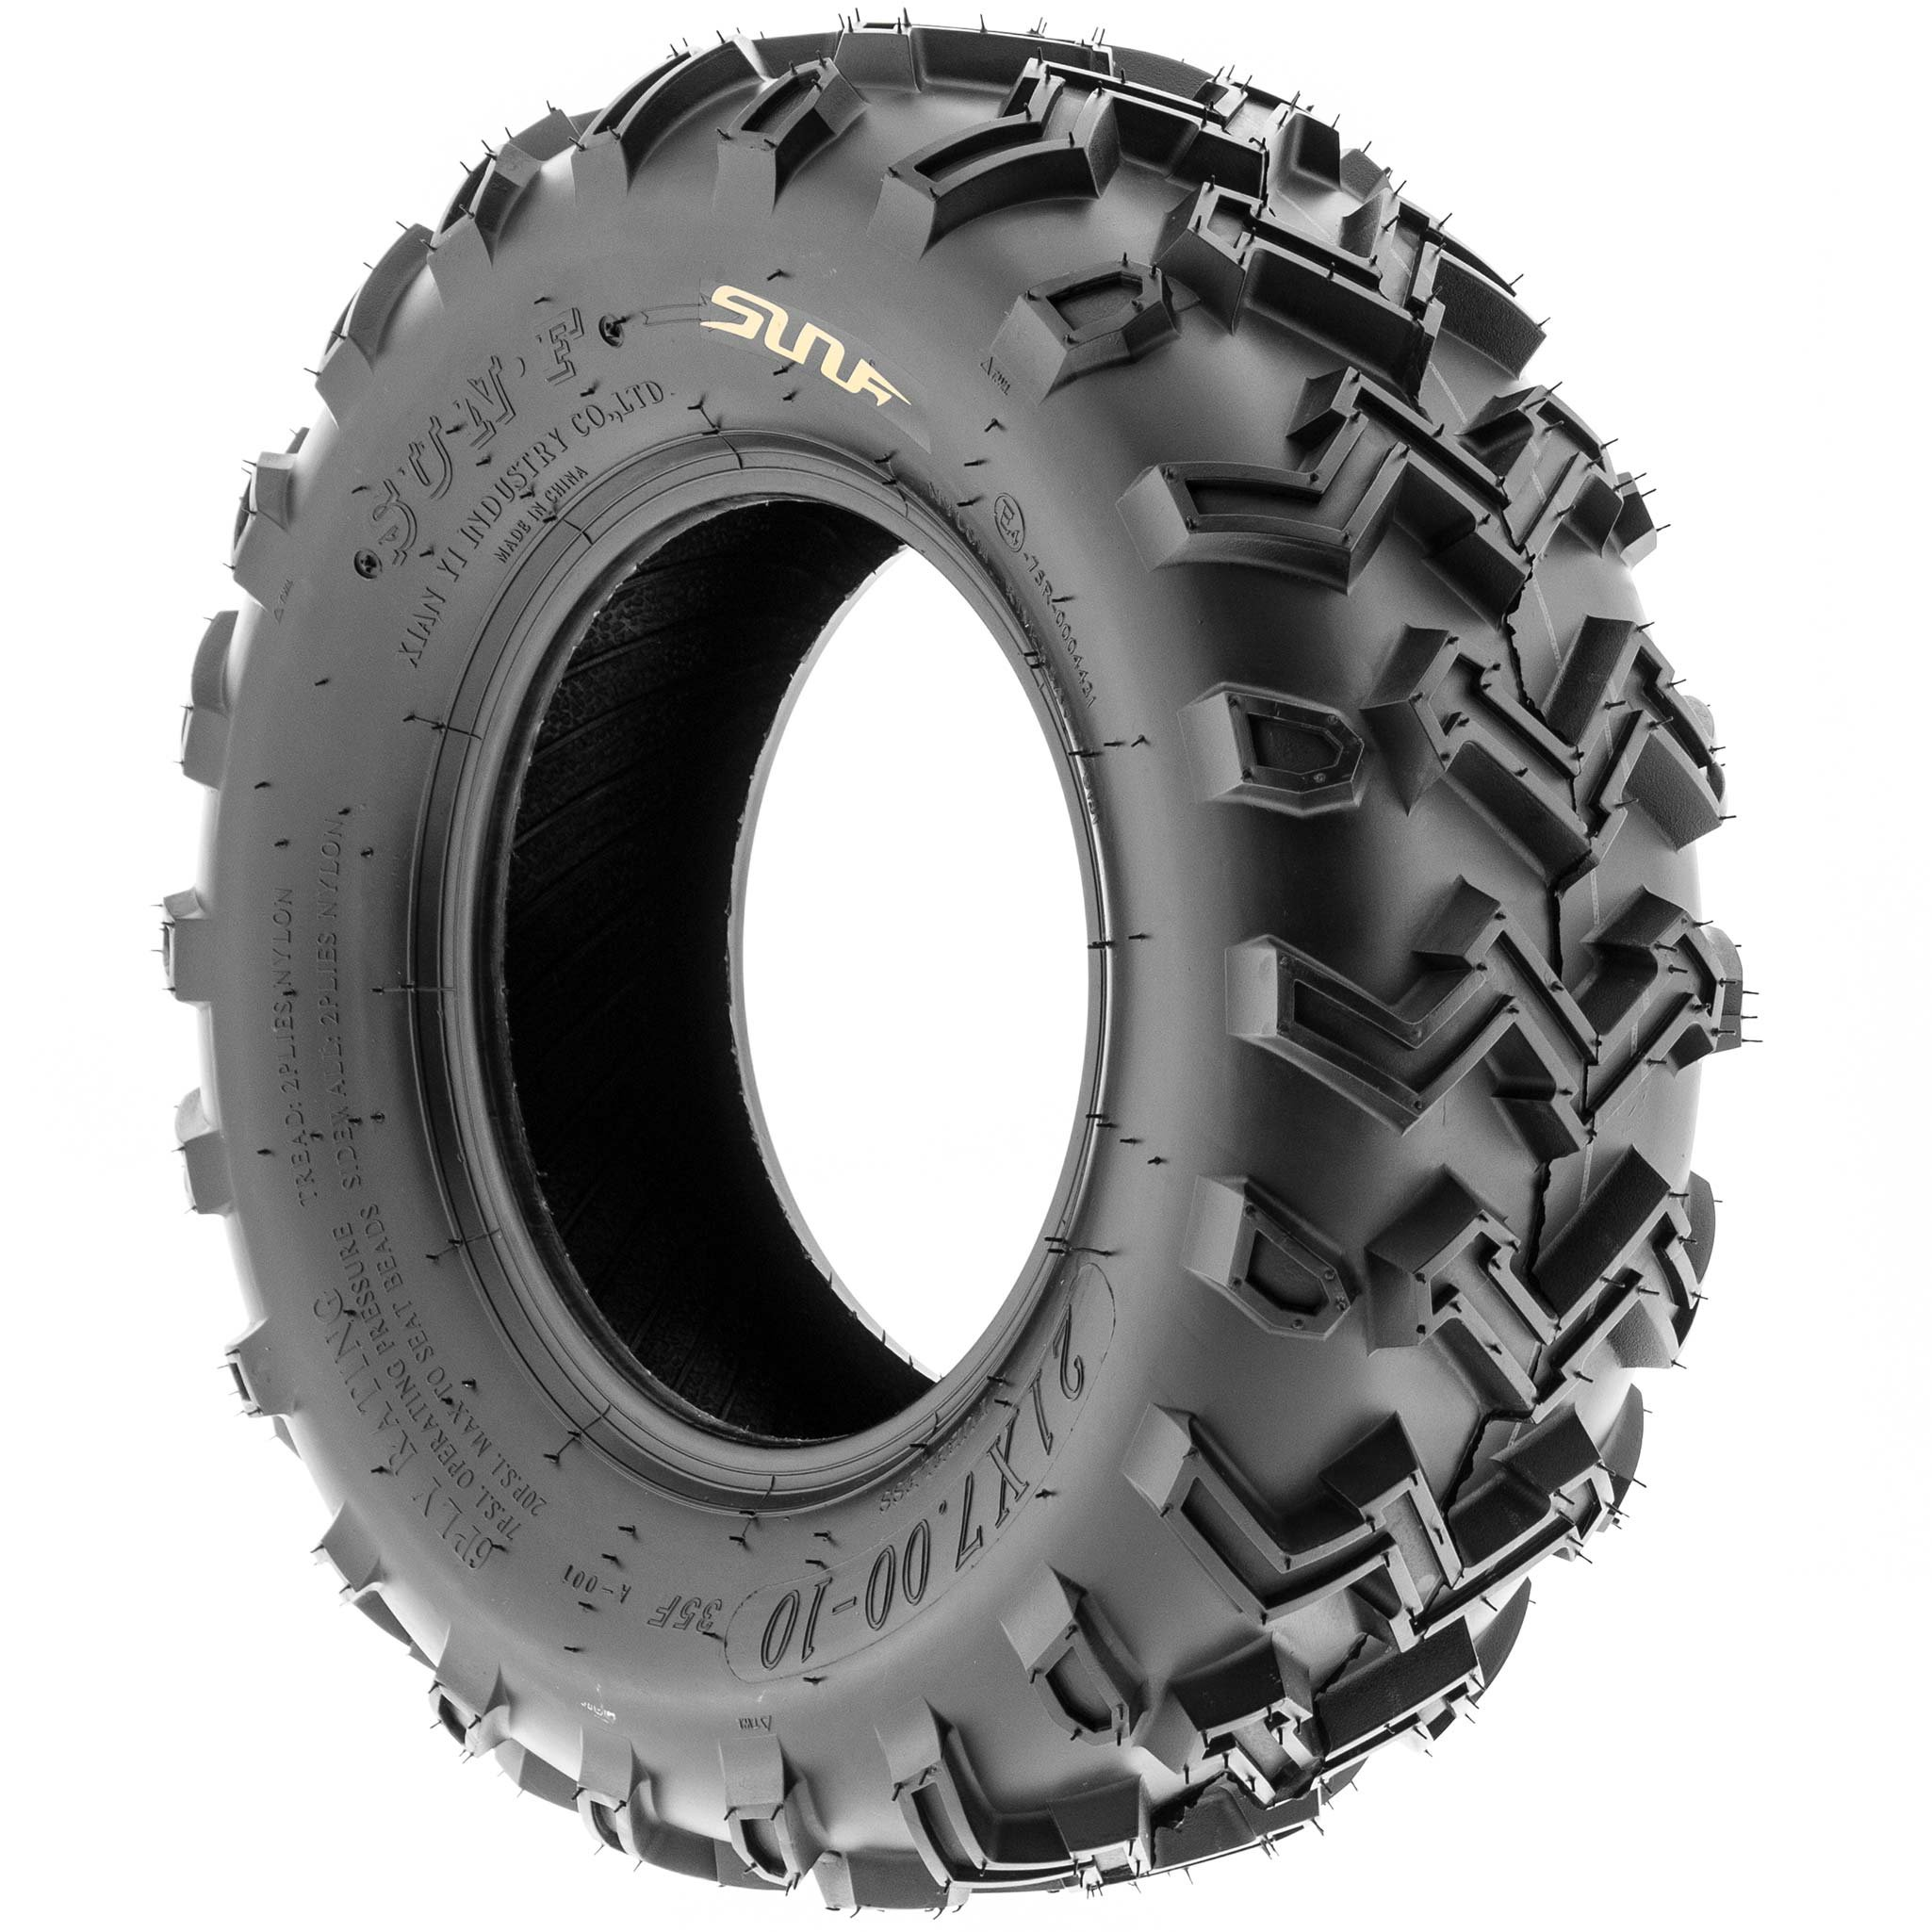 SunF 21x7-10 21x7x10 ATV UTV All Terrain Race Replacement 6 PR Tubeless Tires A001, [Set of 2] by SunF (Image #5)